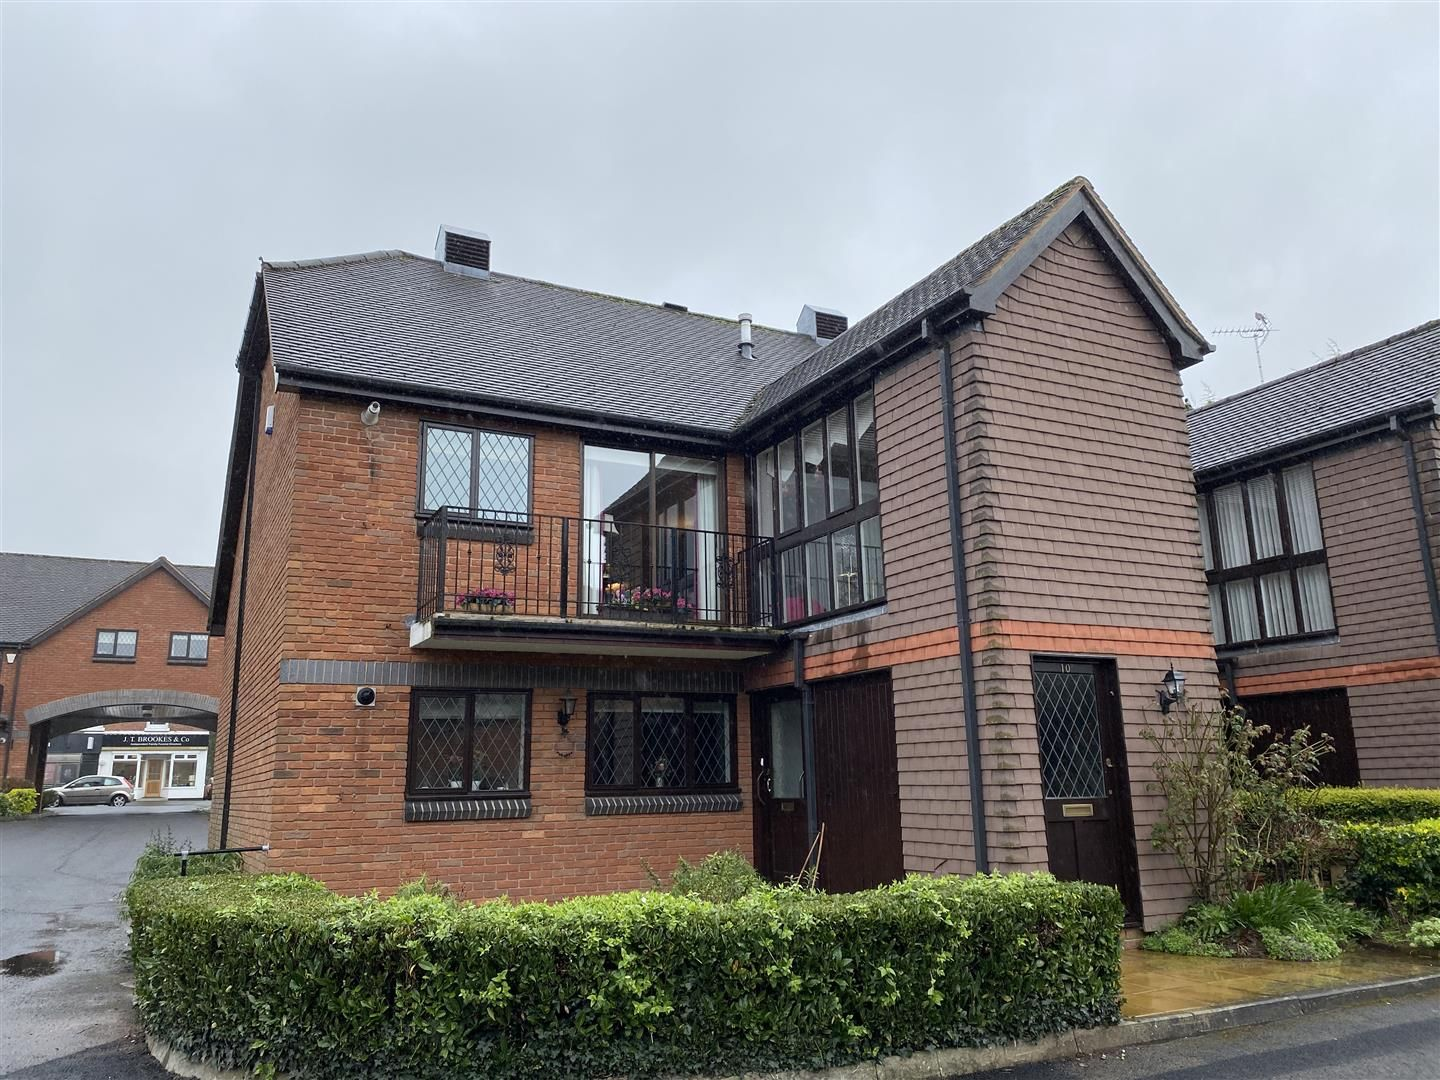 2 bed maisonette for sale in Hagley, DY9